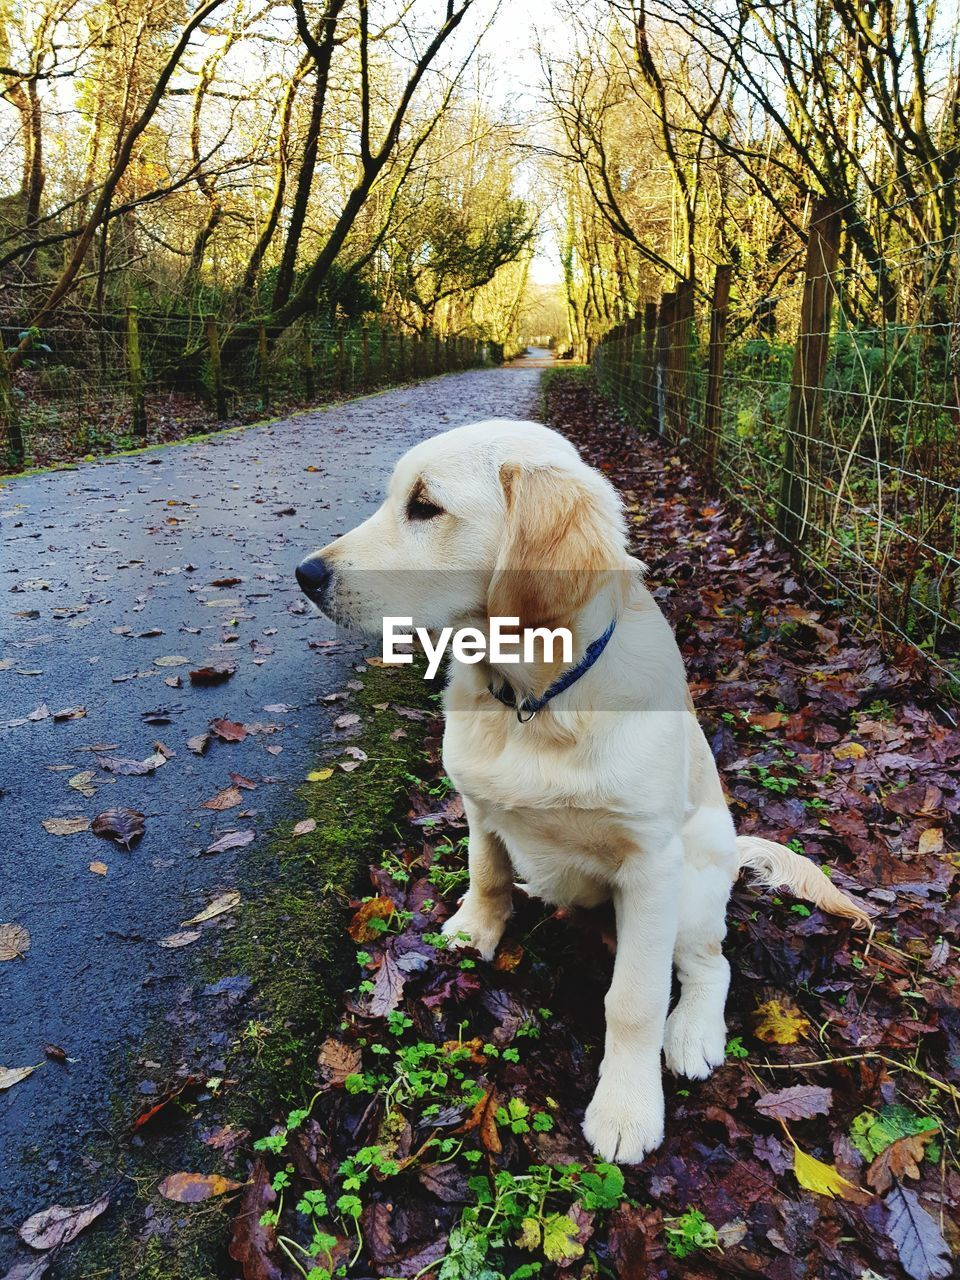 dog, pets, autumn, one animal, domestic animals, animal themes, tree, leaf, mammal, day, outdoors, nature, branch, labrador retriever, full length, no people, sitting